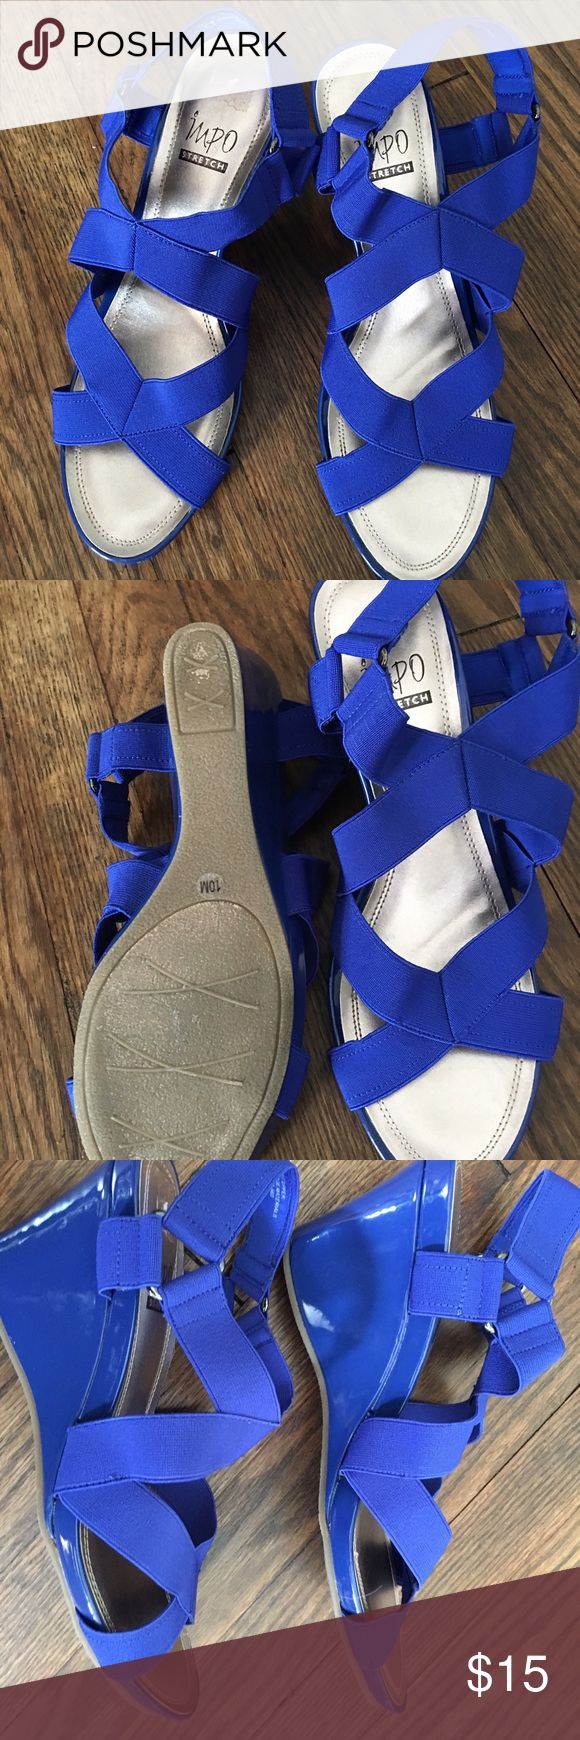 Ladies wedged sandal Worn once briefly. Super cute wedged sandal. Royal blue. No marks or scuffs of any kind. Stretchy elastic straps which are great for someone like me whose feet tend to swell at times! Impo Shoes Wedges